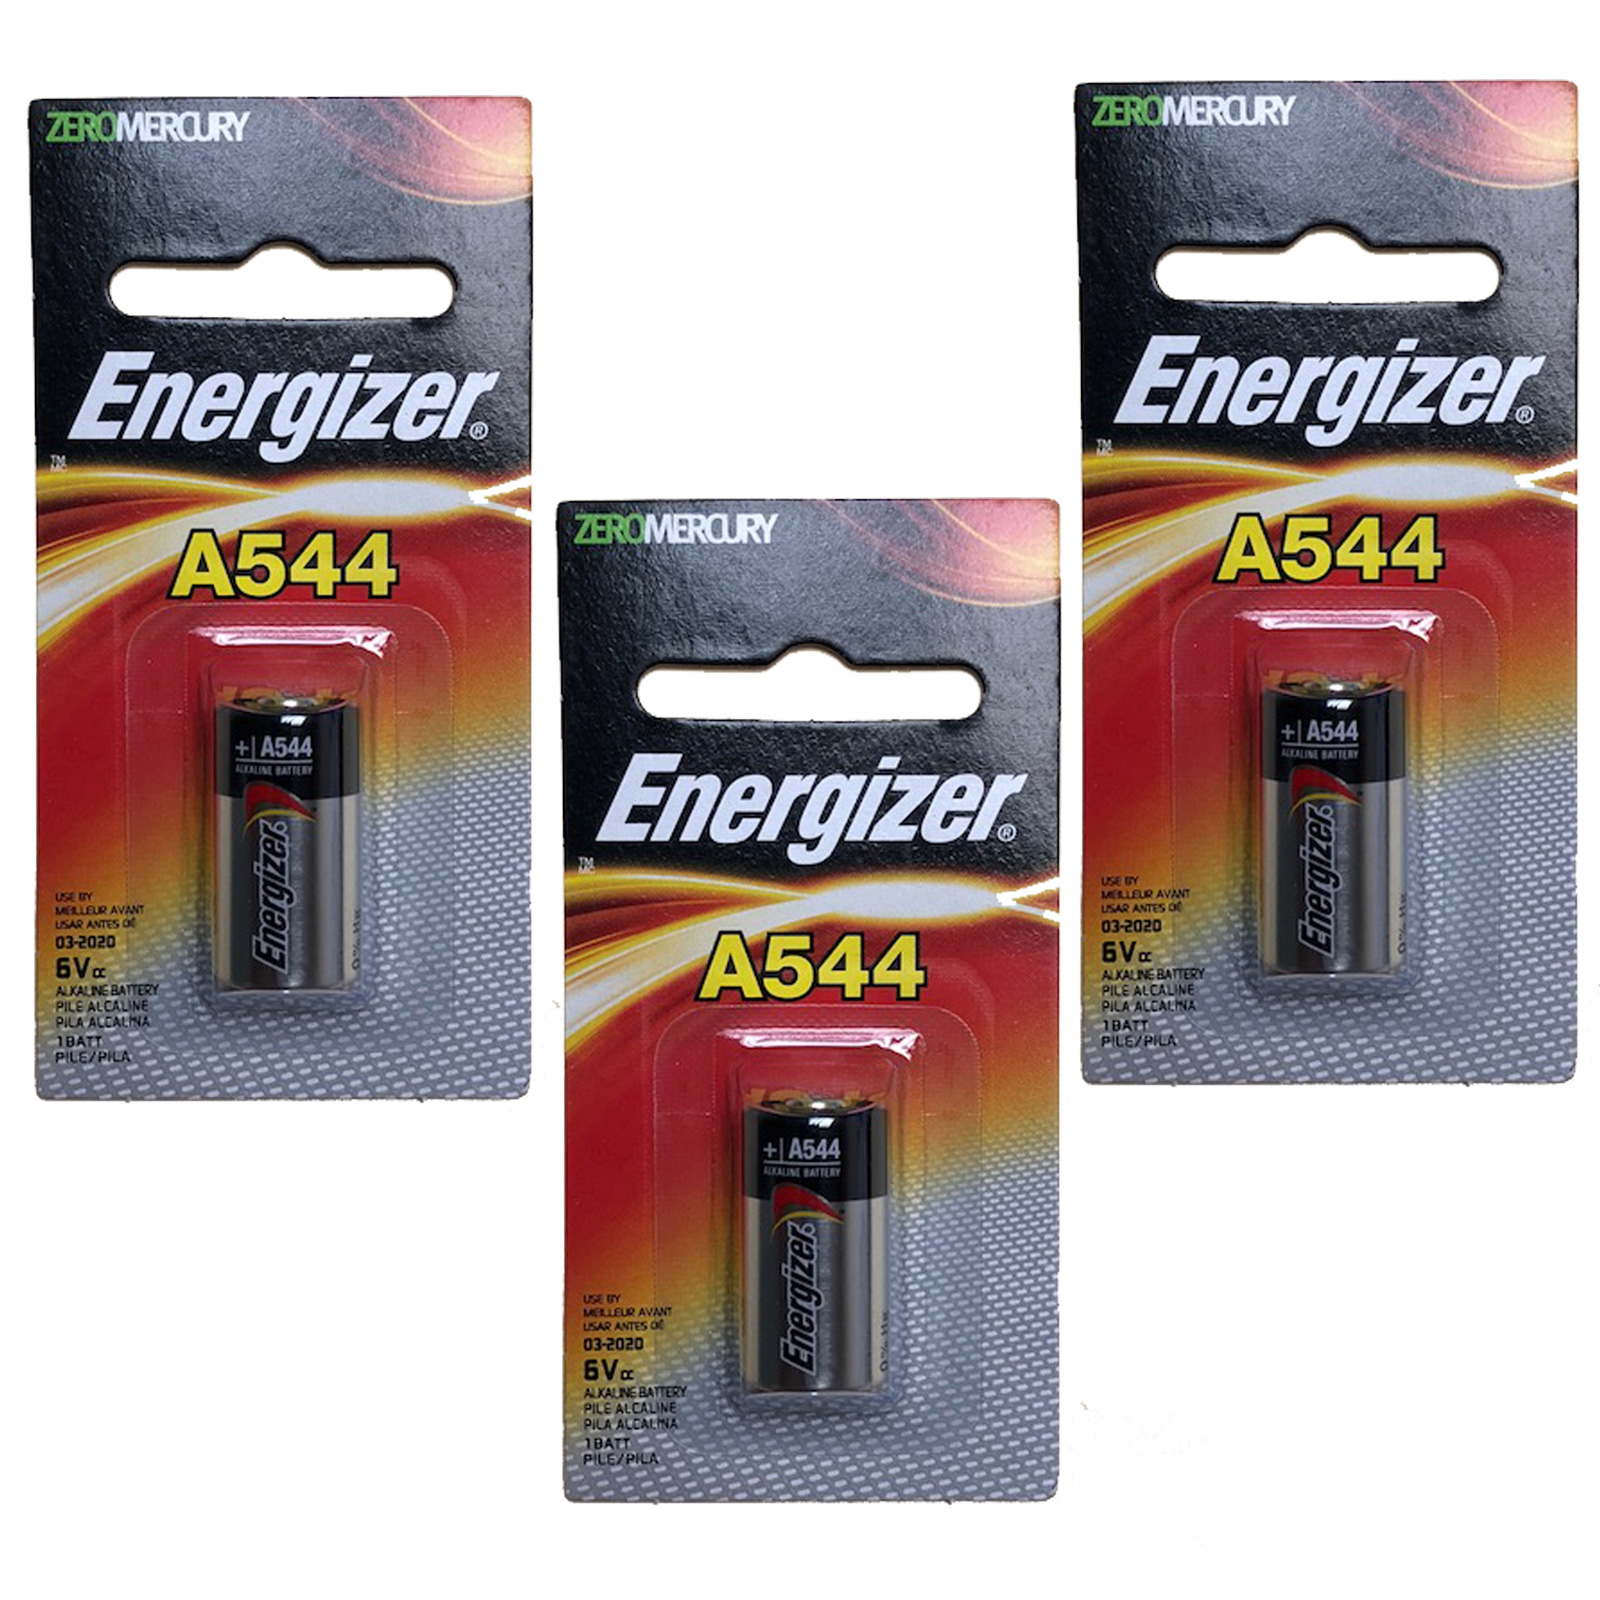 3x Energizer A544 6V Photo Battery Replace Toshiba 4LR44, Neda 1414A, 1406LC by Energizer